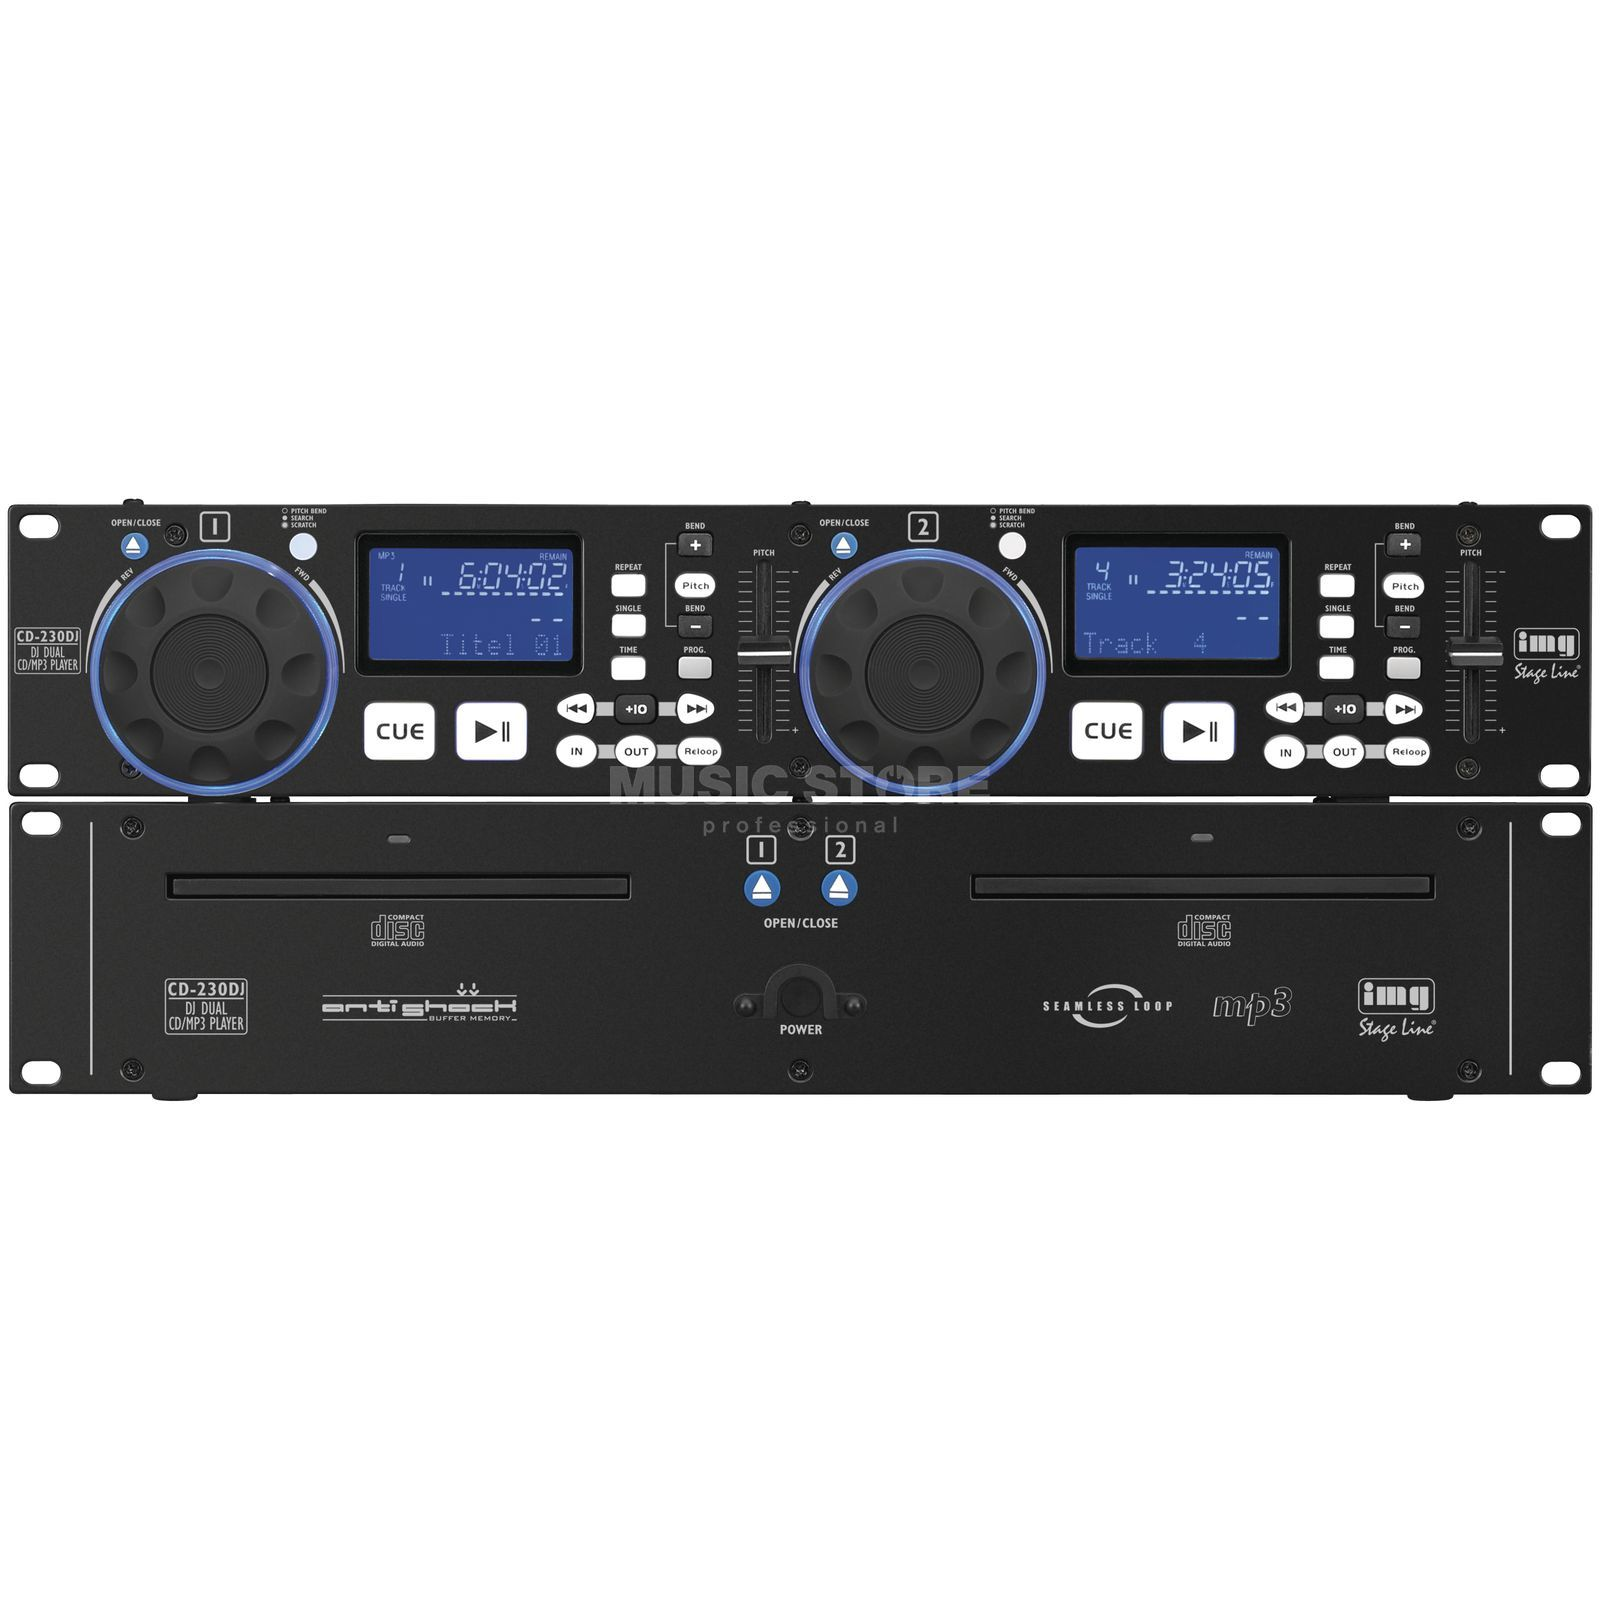 IMG STAGELINE CD-230DJ DJ-Dual-CD-/MP3-Player Zdjęcie produktu